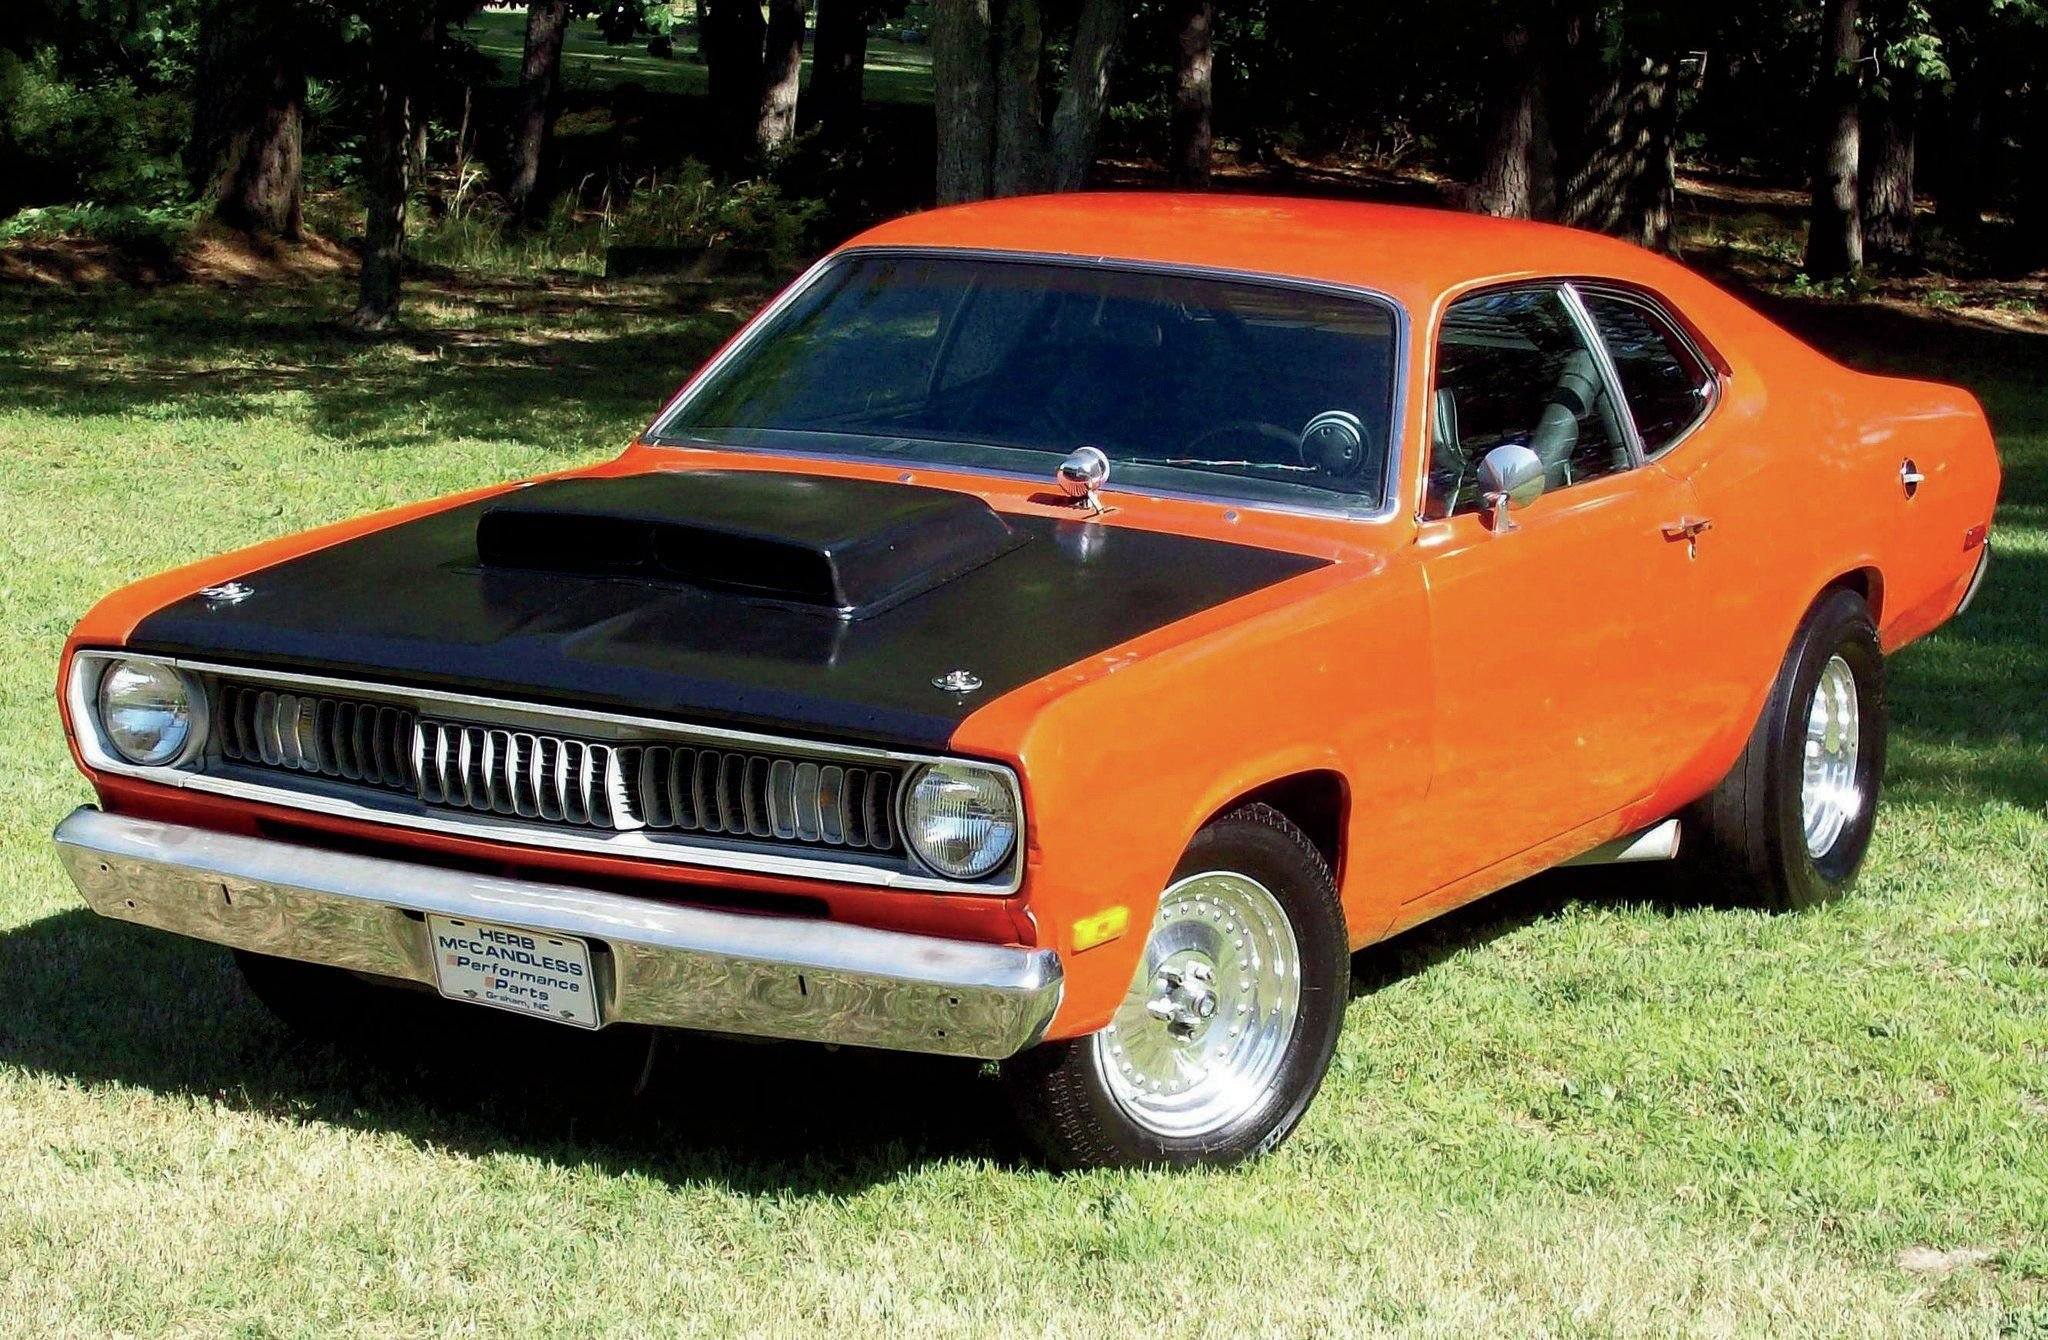 1972 Plymouth Duster-01 wallpaper